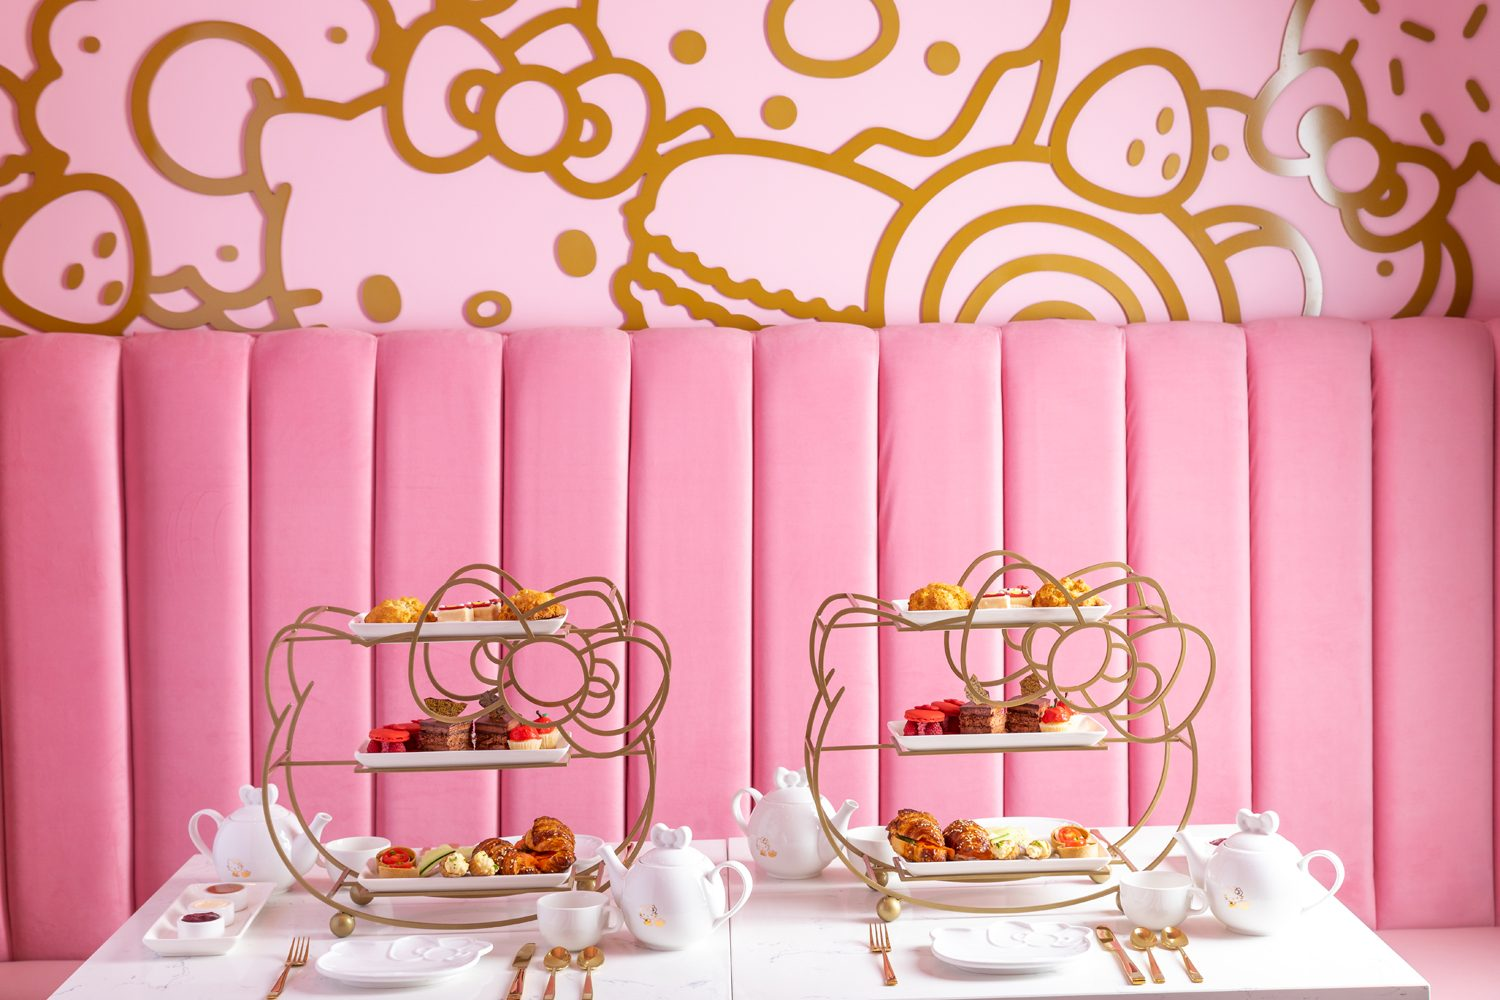 A New Hello Kitty Cafe Is Opening So Your Bridal Shower Plans Have